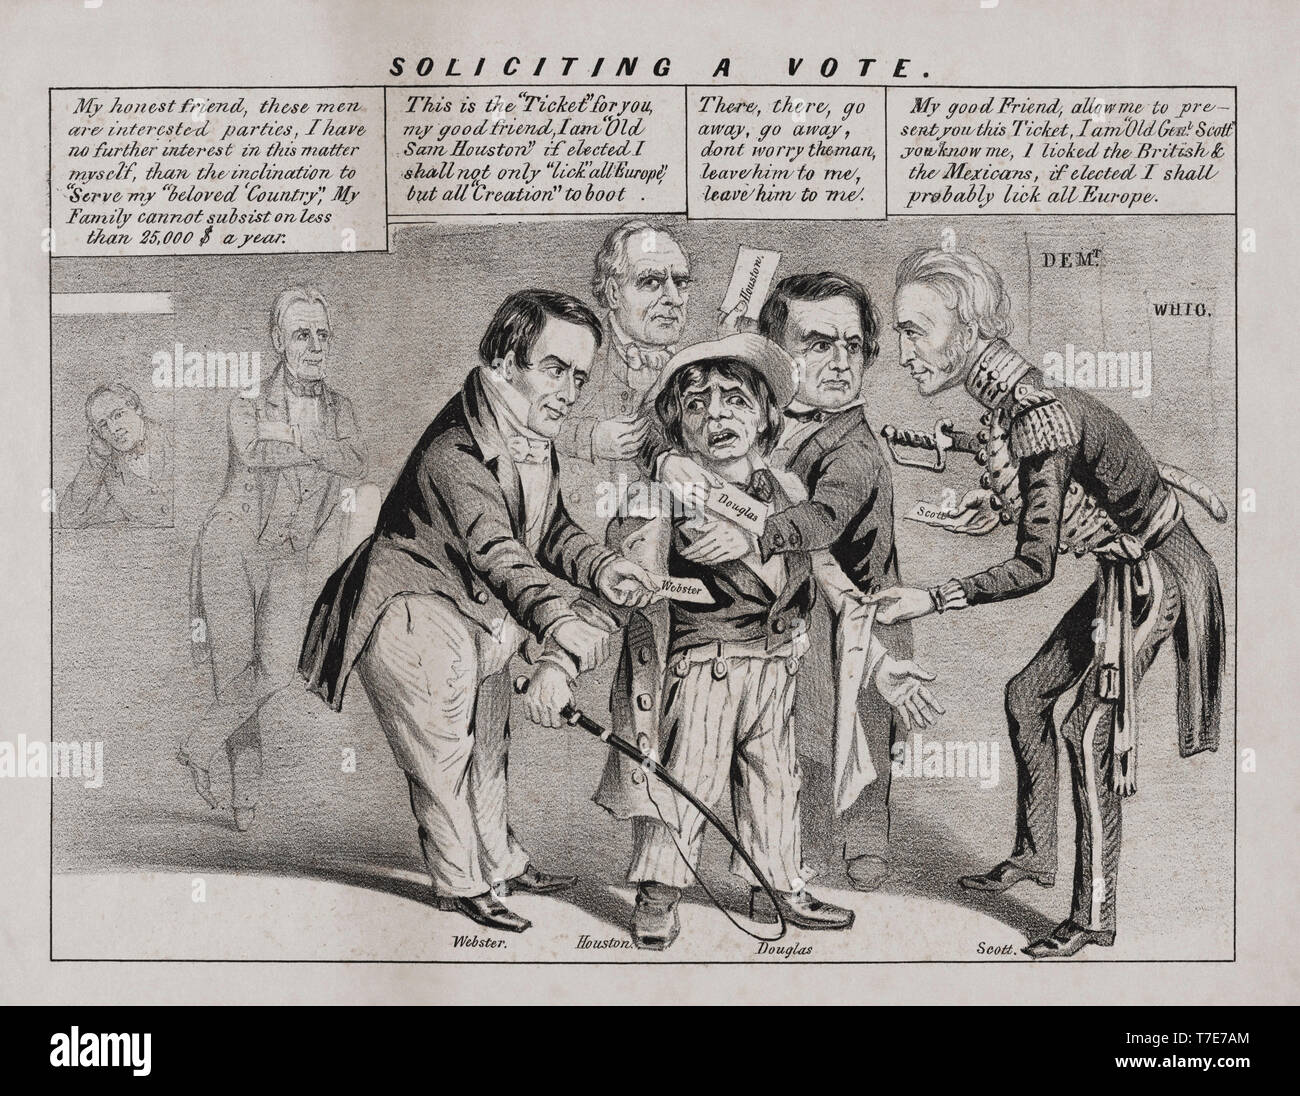 'Soliciting a Vote', Political Cartoon during U.S. Presidential Campaign Featuring Stephen Douglas, Sam Houston, Winfield Scott, Daniel Webster,  Lithograph, John L. Magee, 1852 - Stock Image